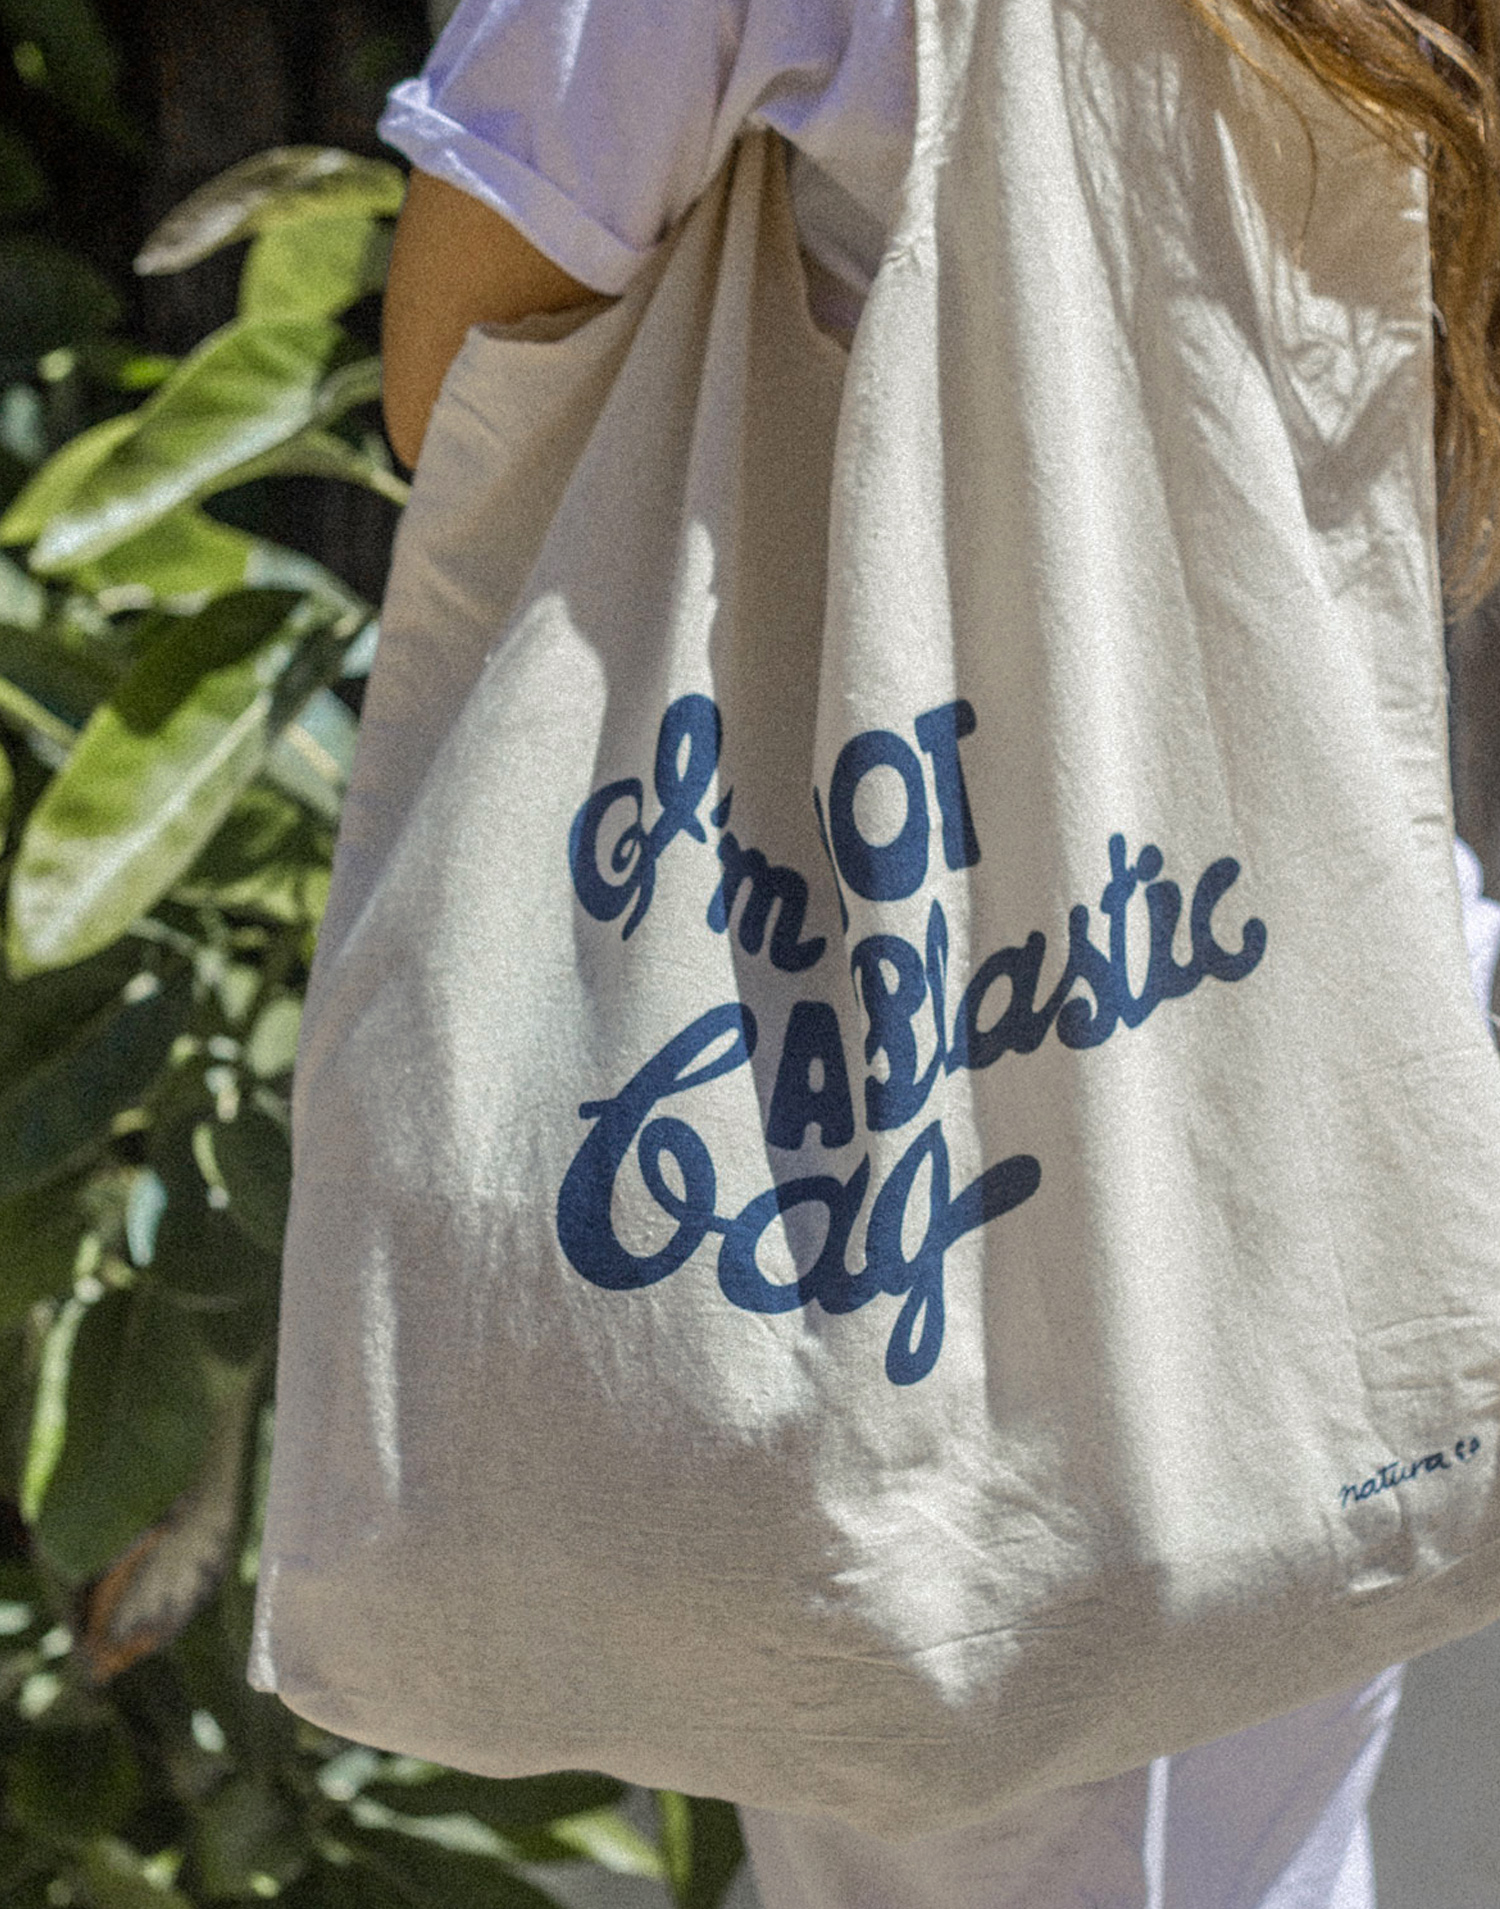 I'm not a plastic bag tote